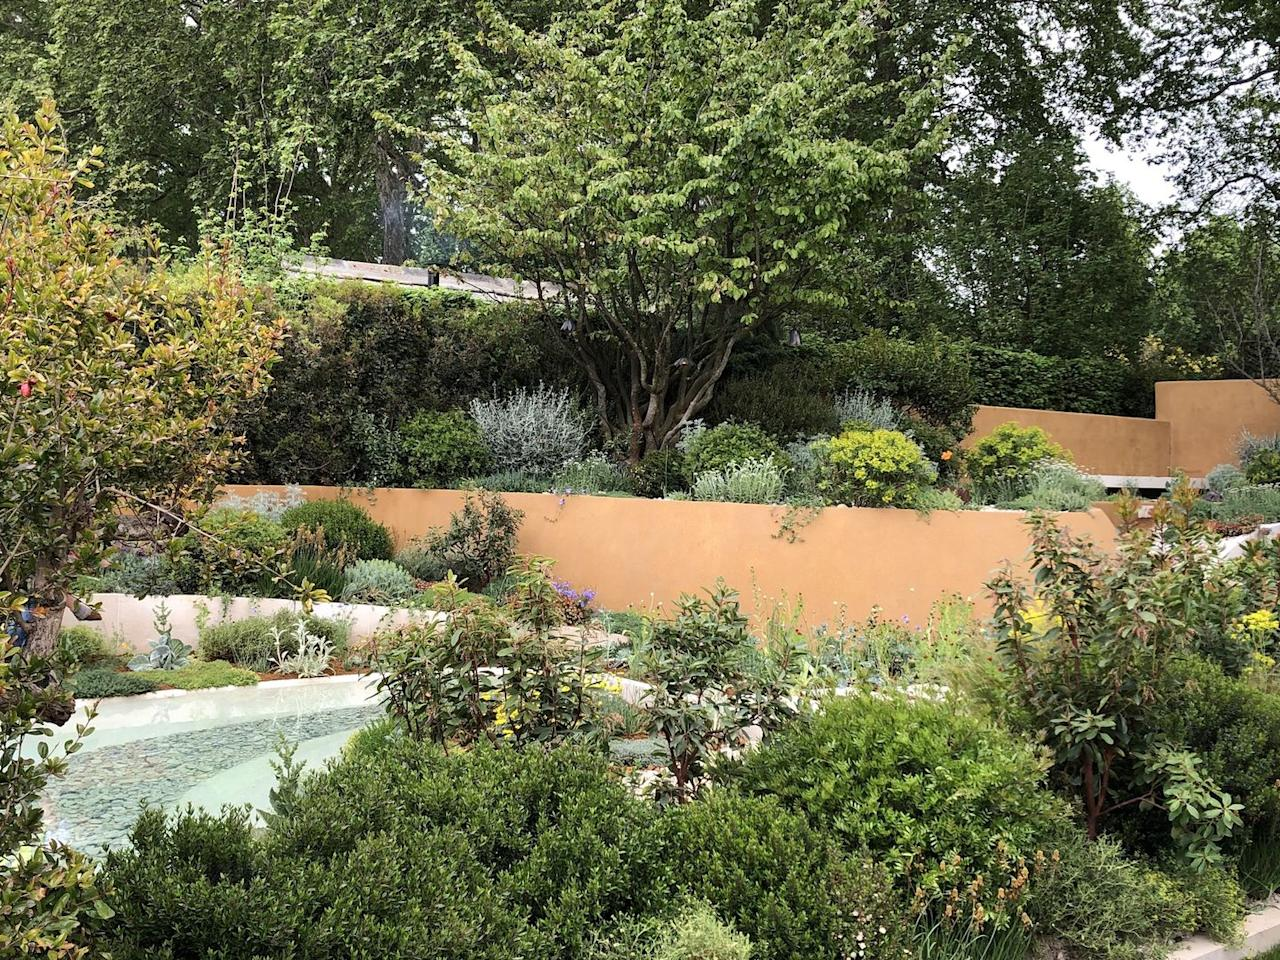 <p>The natural landscape is a major influence in gardens of all sizes this year.  <strong>Joe Perkins MSGD</strong> imagines the ever-changing coastal landscape using naturalistic seaside planting including Agapanthus, Sea Kale and the Australian Cushion Bush, while <strong>Tom Hoblyn MSGD </strong>takes inspiration from the wind-blown sand dunes of arid landscapes for his Middle Eastern garden. </p><p>More easily replicated is the planting on the Warner's Distillery garden by <strong>Helen Elks-Smith MSGD,</strong> inspired by the English countryside and including a wildflower turf embedded with local species of Cowslip, Achillia and Harebell and a swathe of native hedgerow. Elsewhere, in <strong>Sue Hayward's </strong>artisan garden, the designer has created a haven for wildlife.   </p><p>Image: Tom Hoblyn MSGD</p>